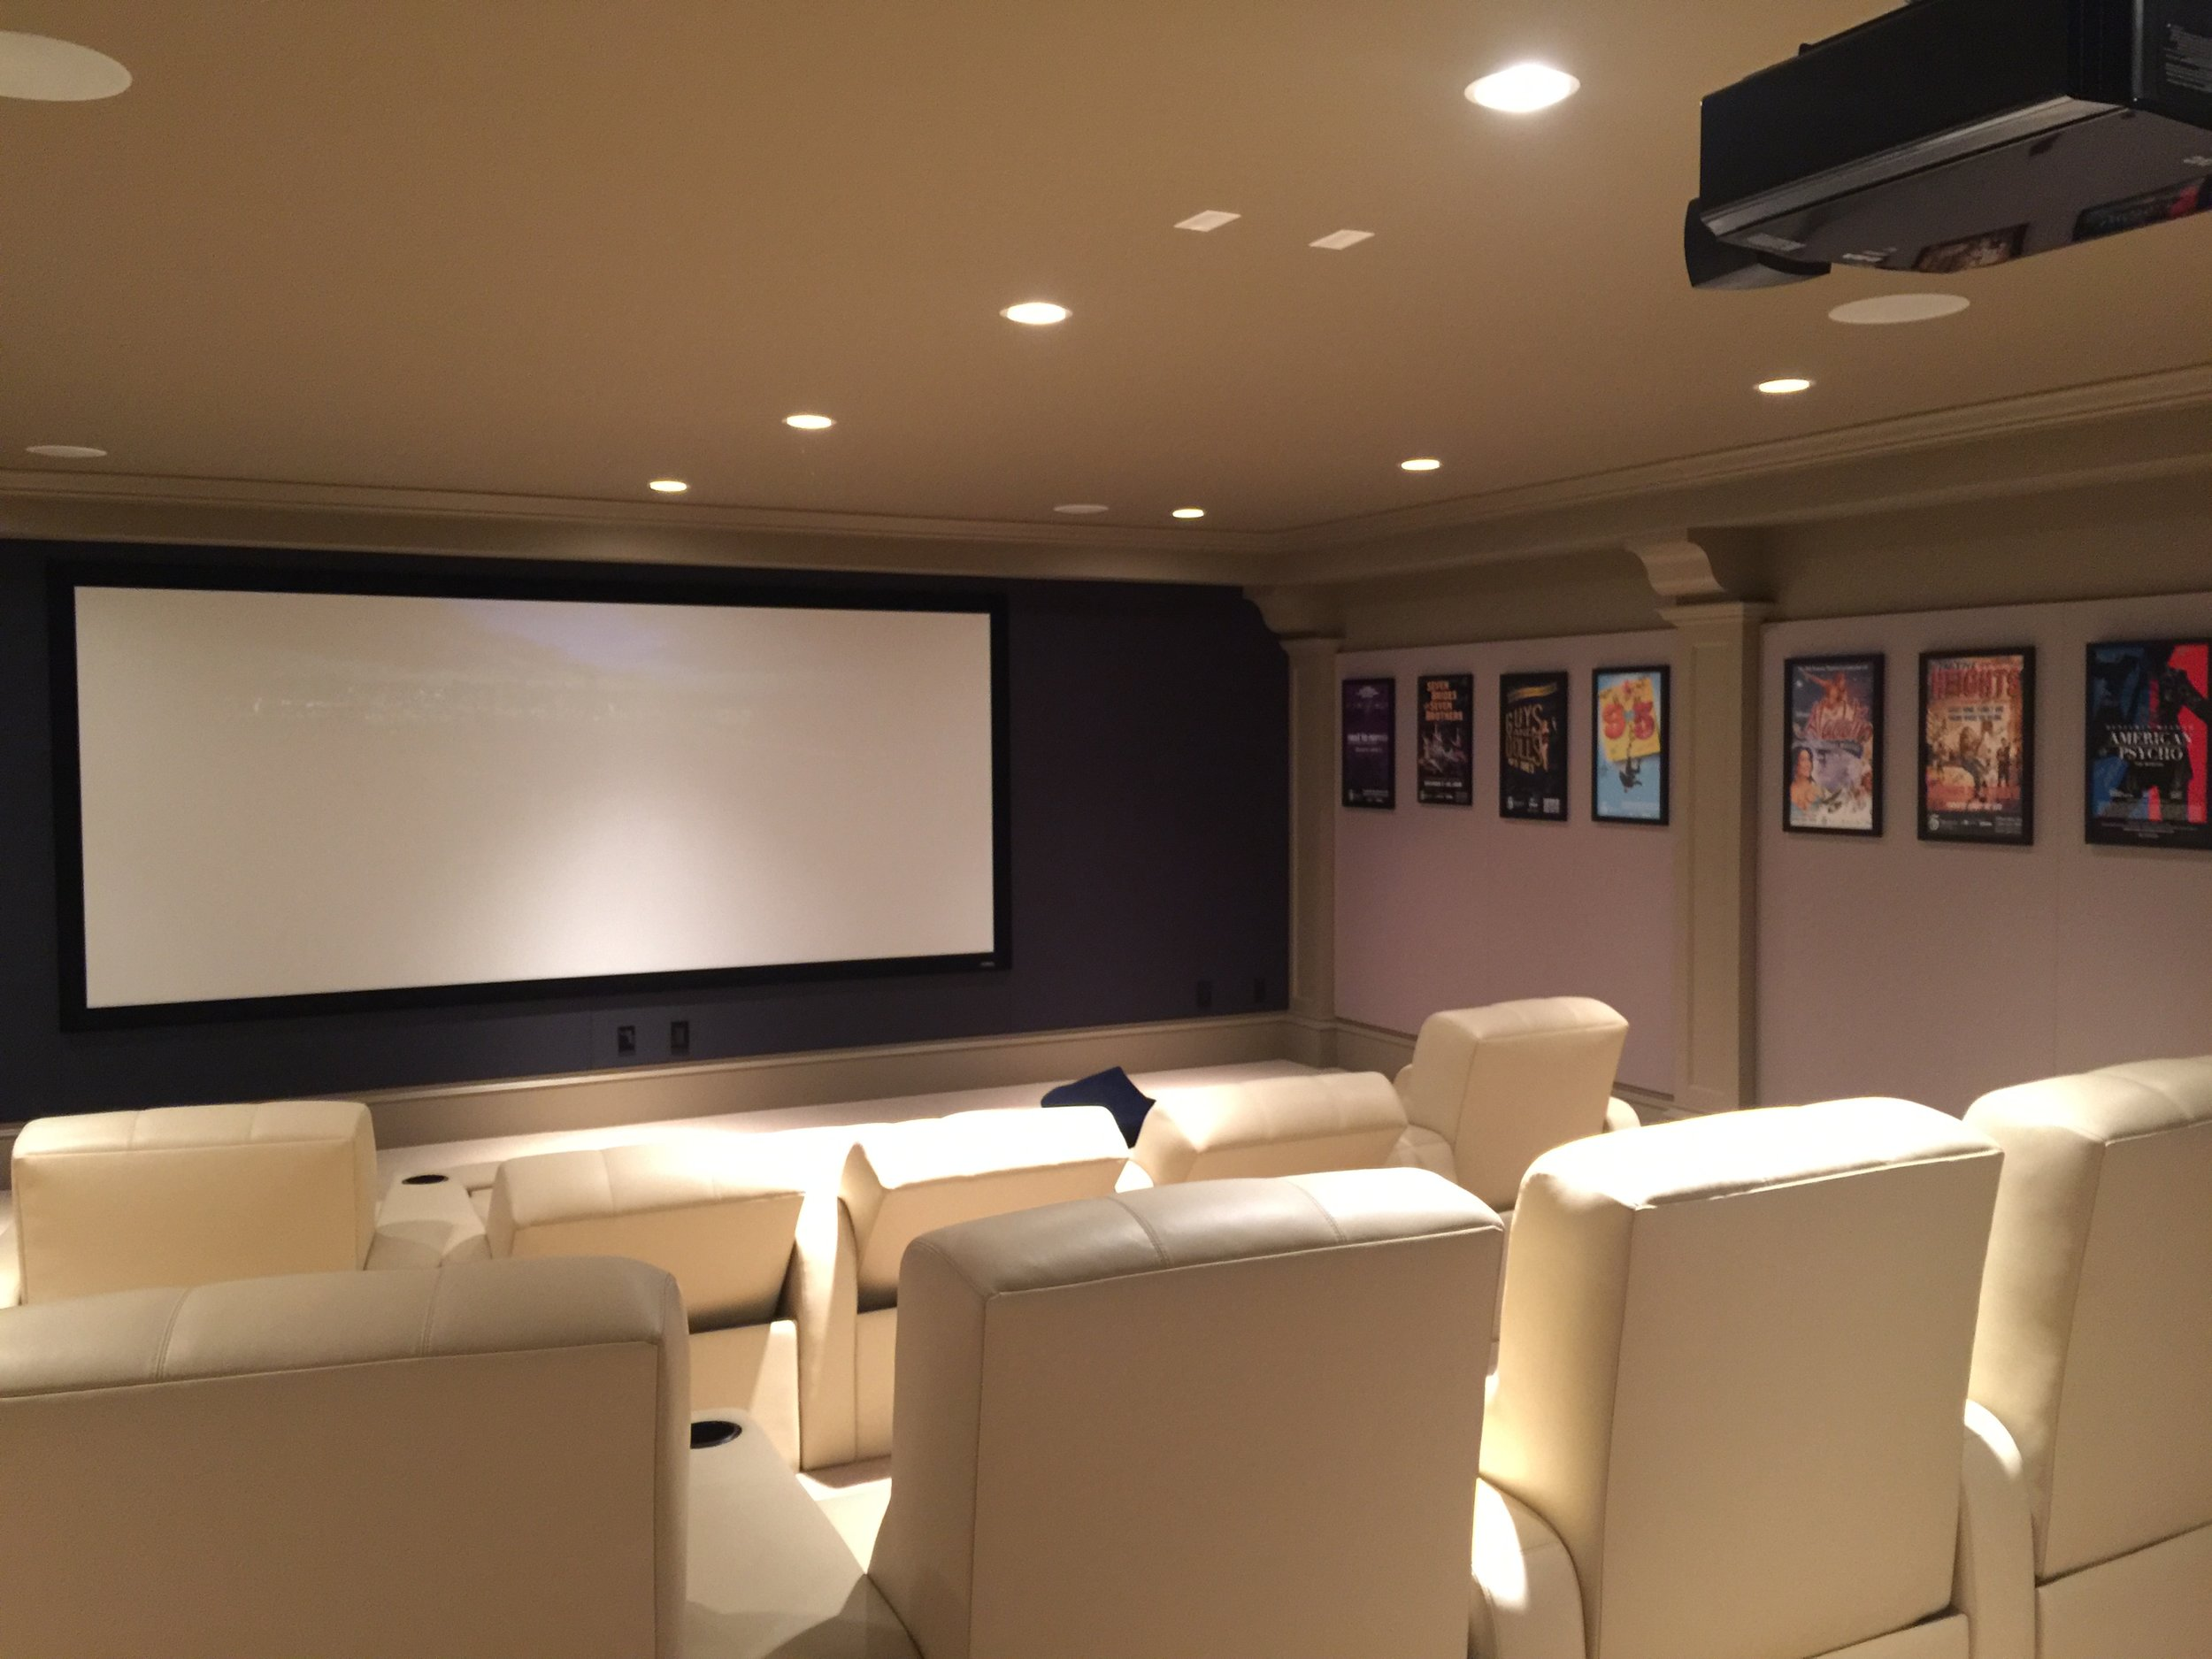 10 very comfortable seats in 235:1 Widescreen, movie night!